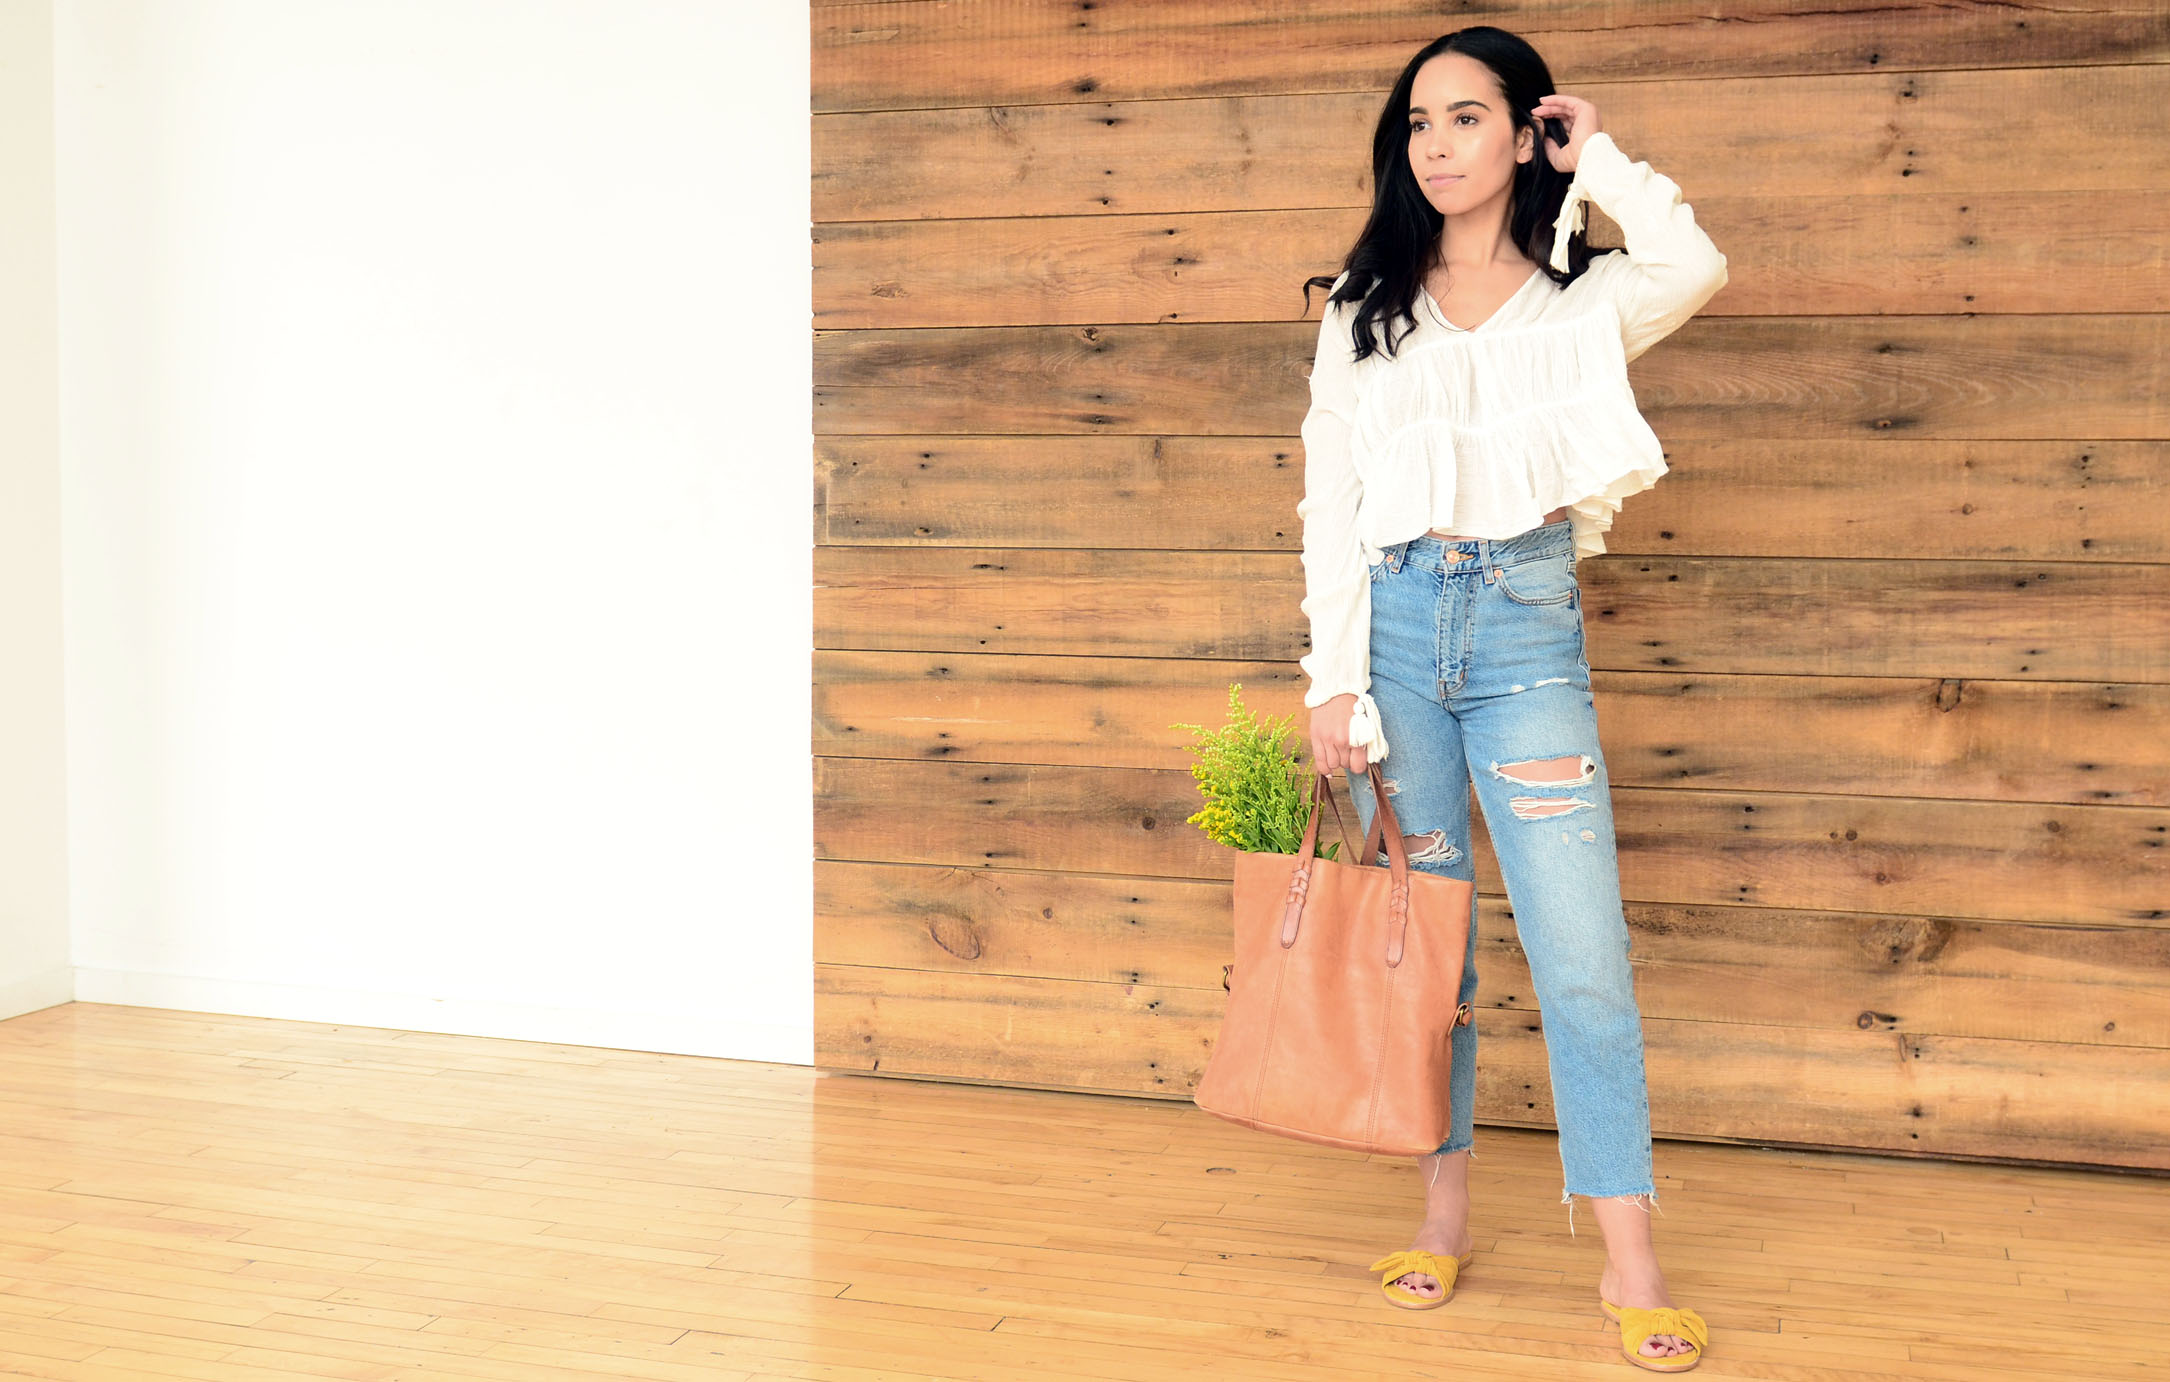 women-i-work-with-danielle-torres-white-ruffle-top-ripped-denim-yellow-sandals